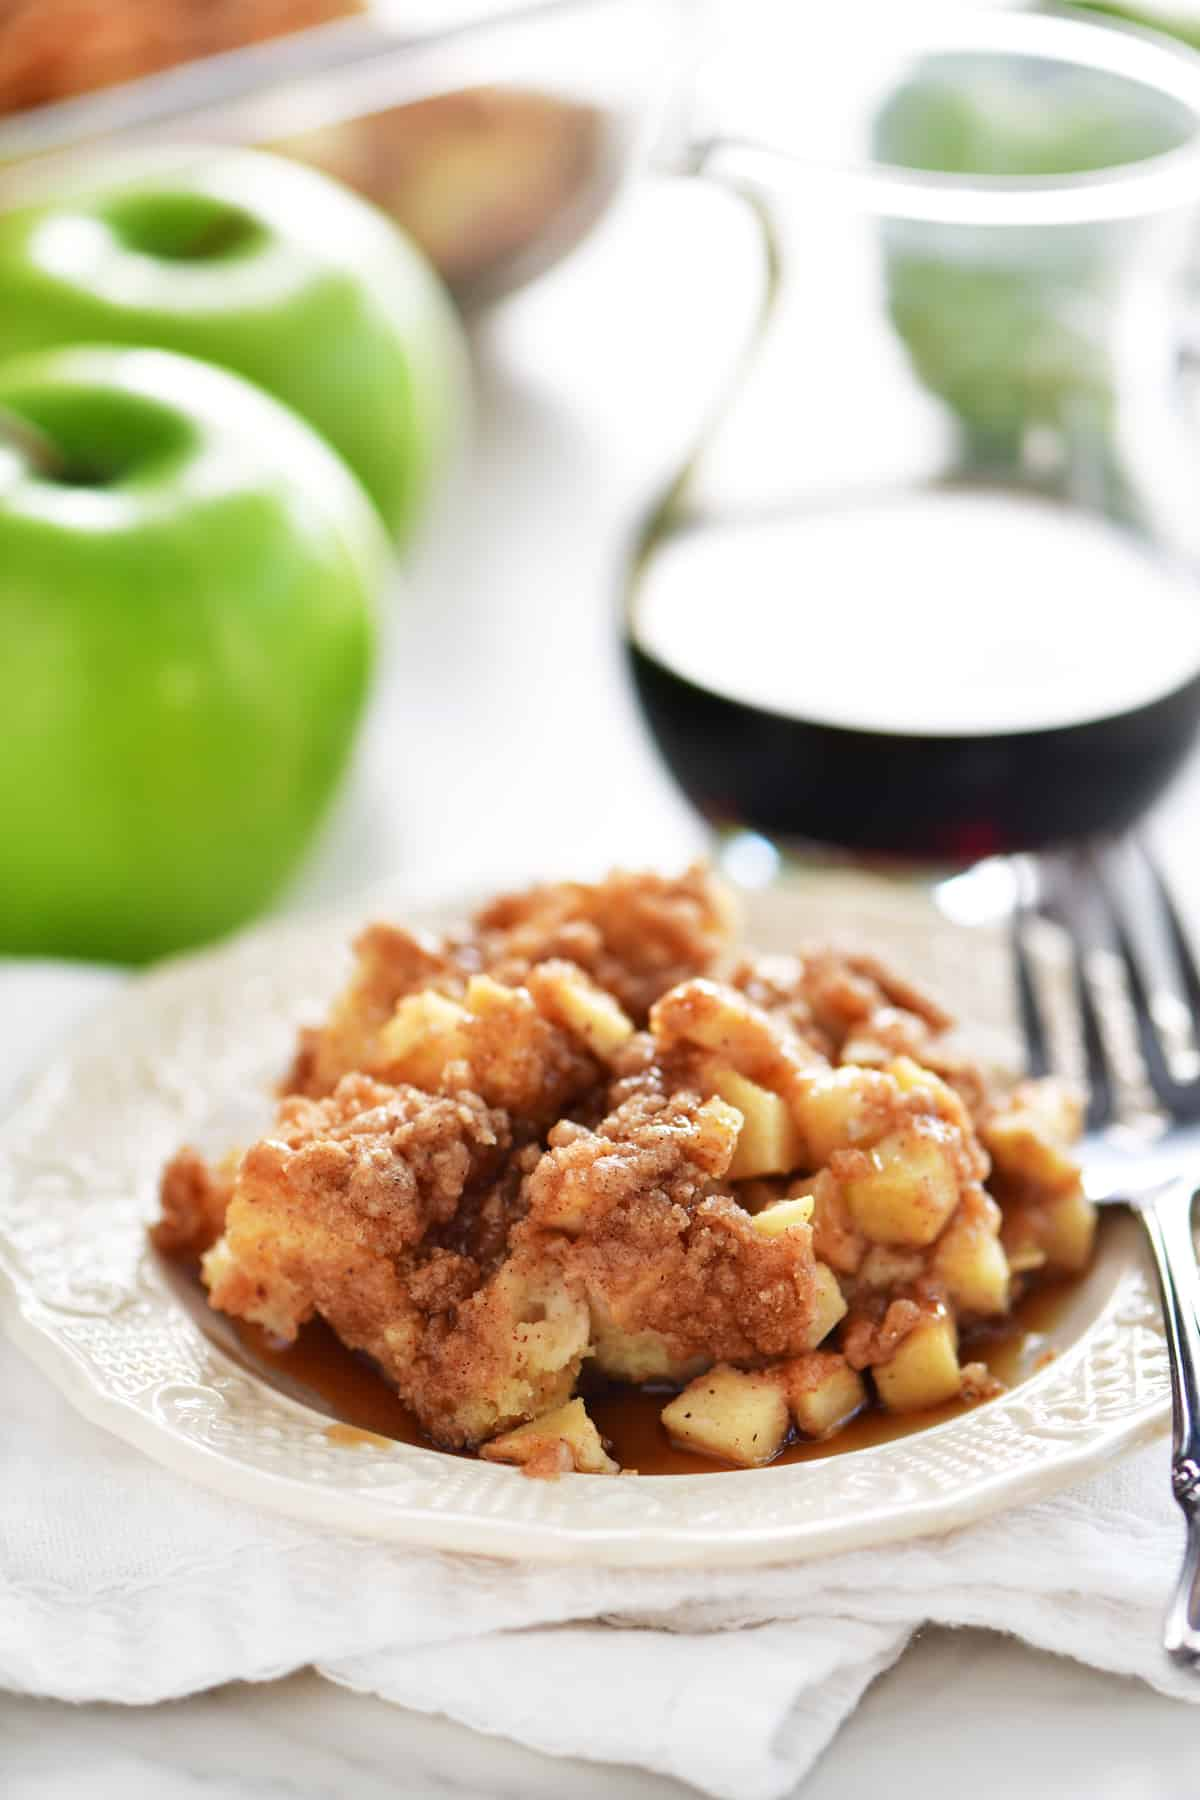 apple cinnamon french toast casserole on plate with fork